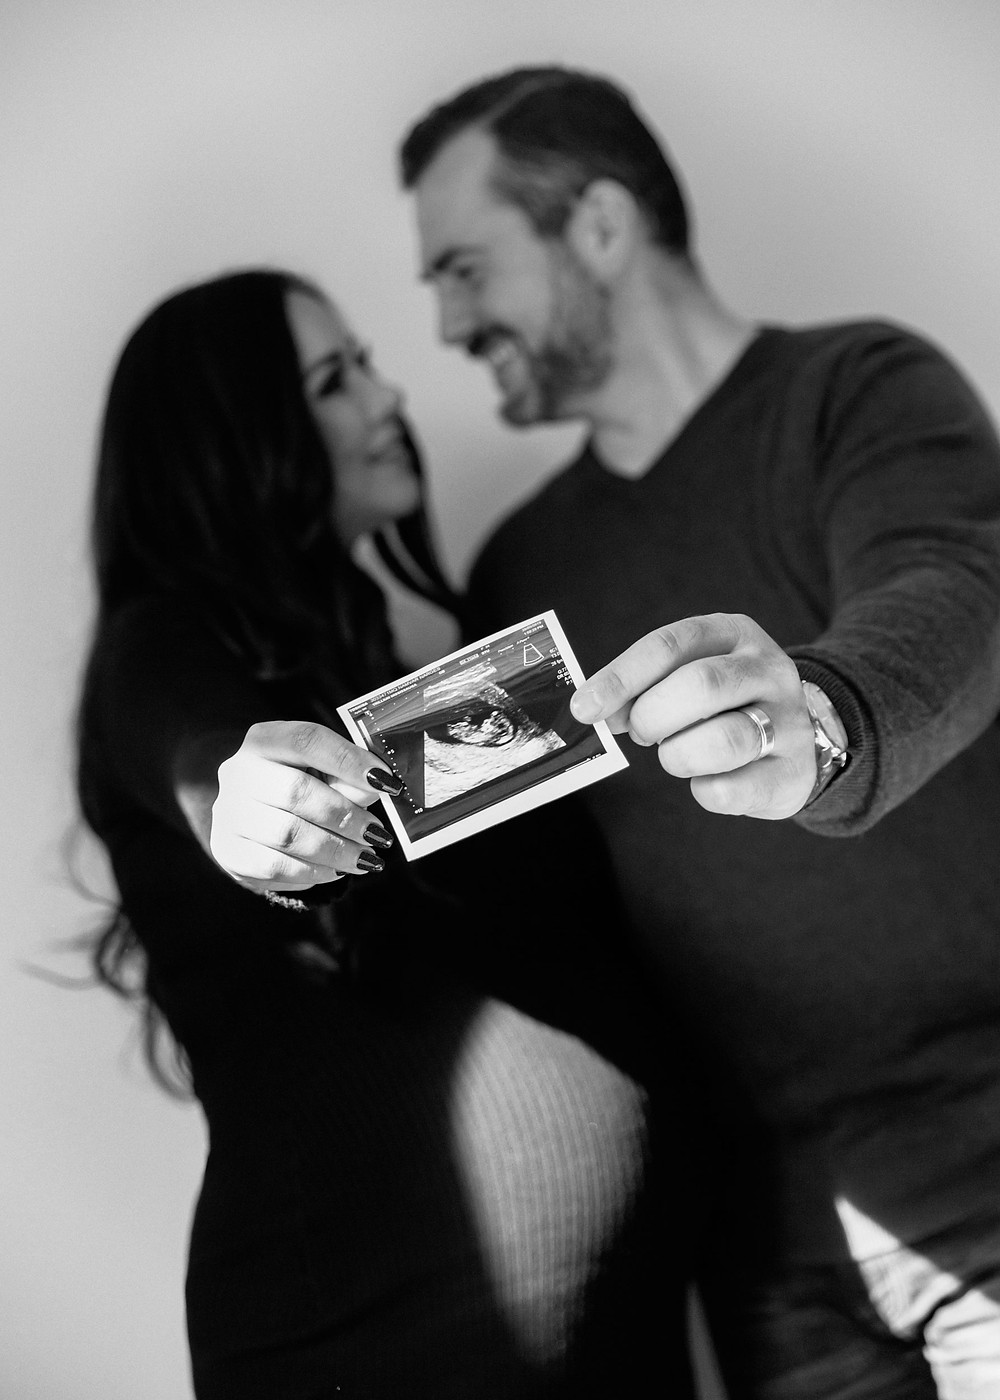 Maternity Photoshoot in Toronto. Black and white pregnancy photography by professional maternity photographer Katia Sativa. Best maternity photoshoot for individuals & couples.